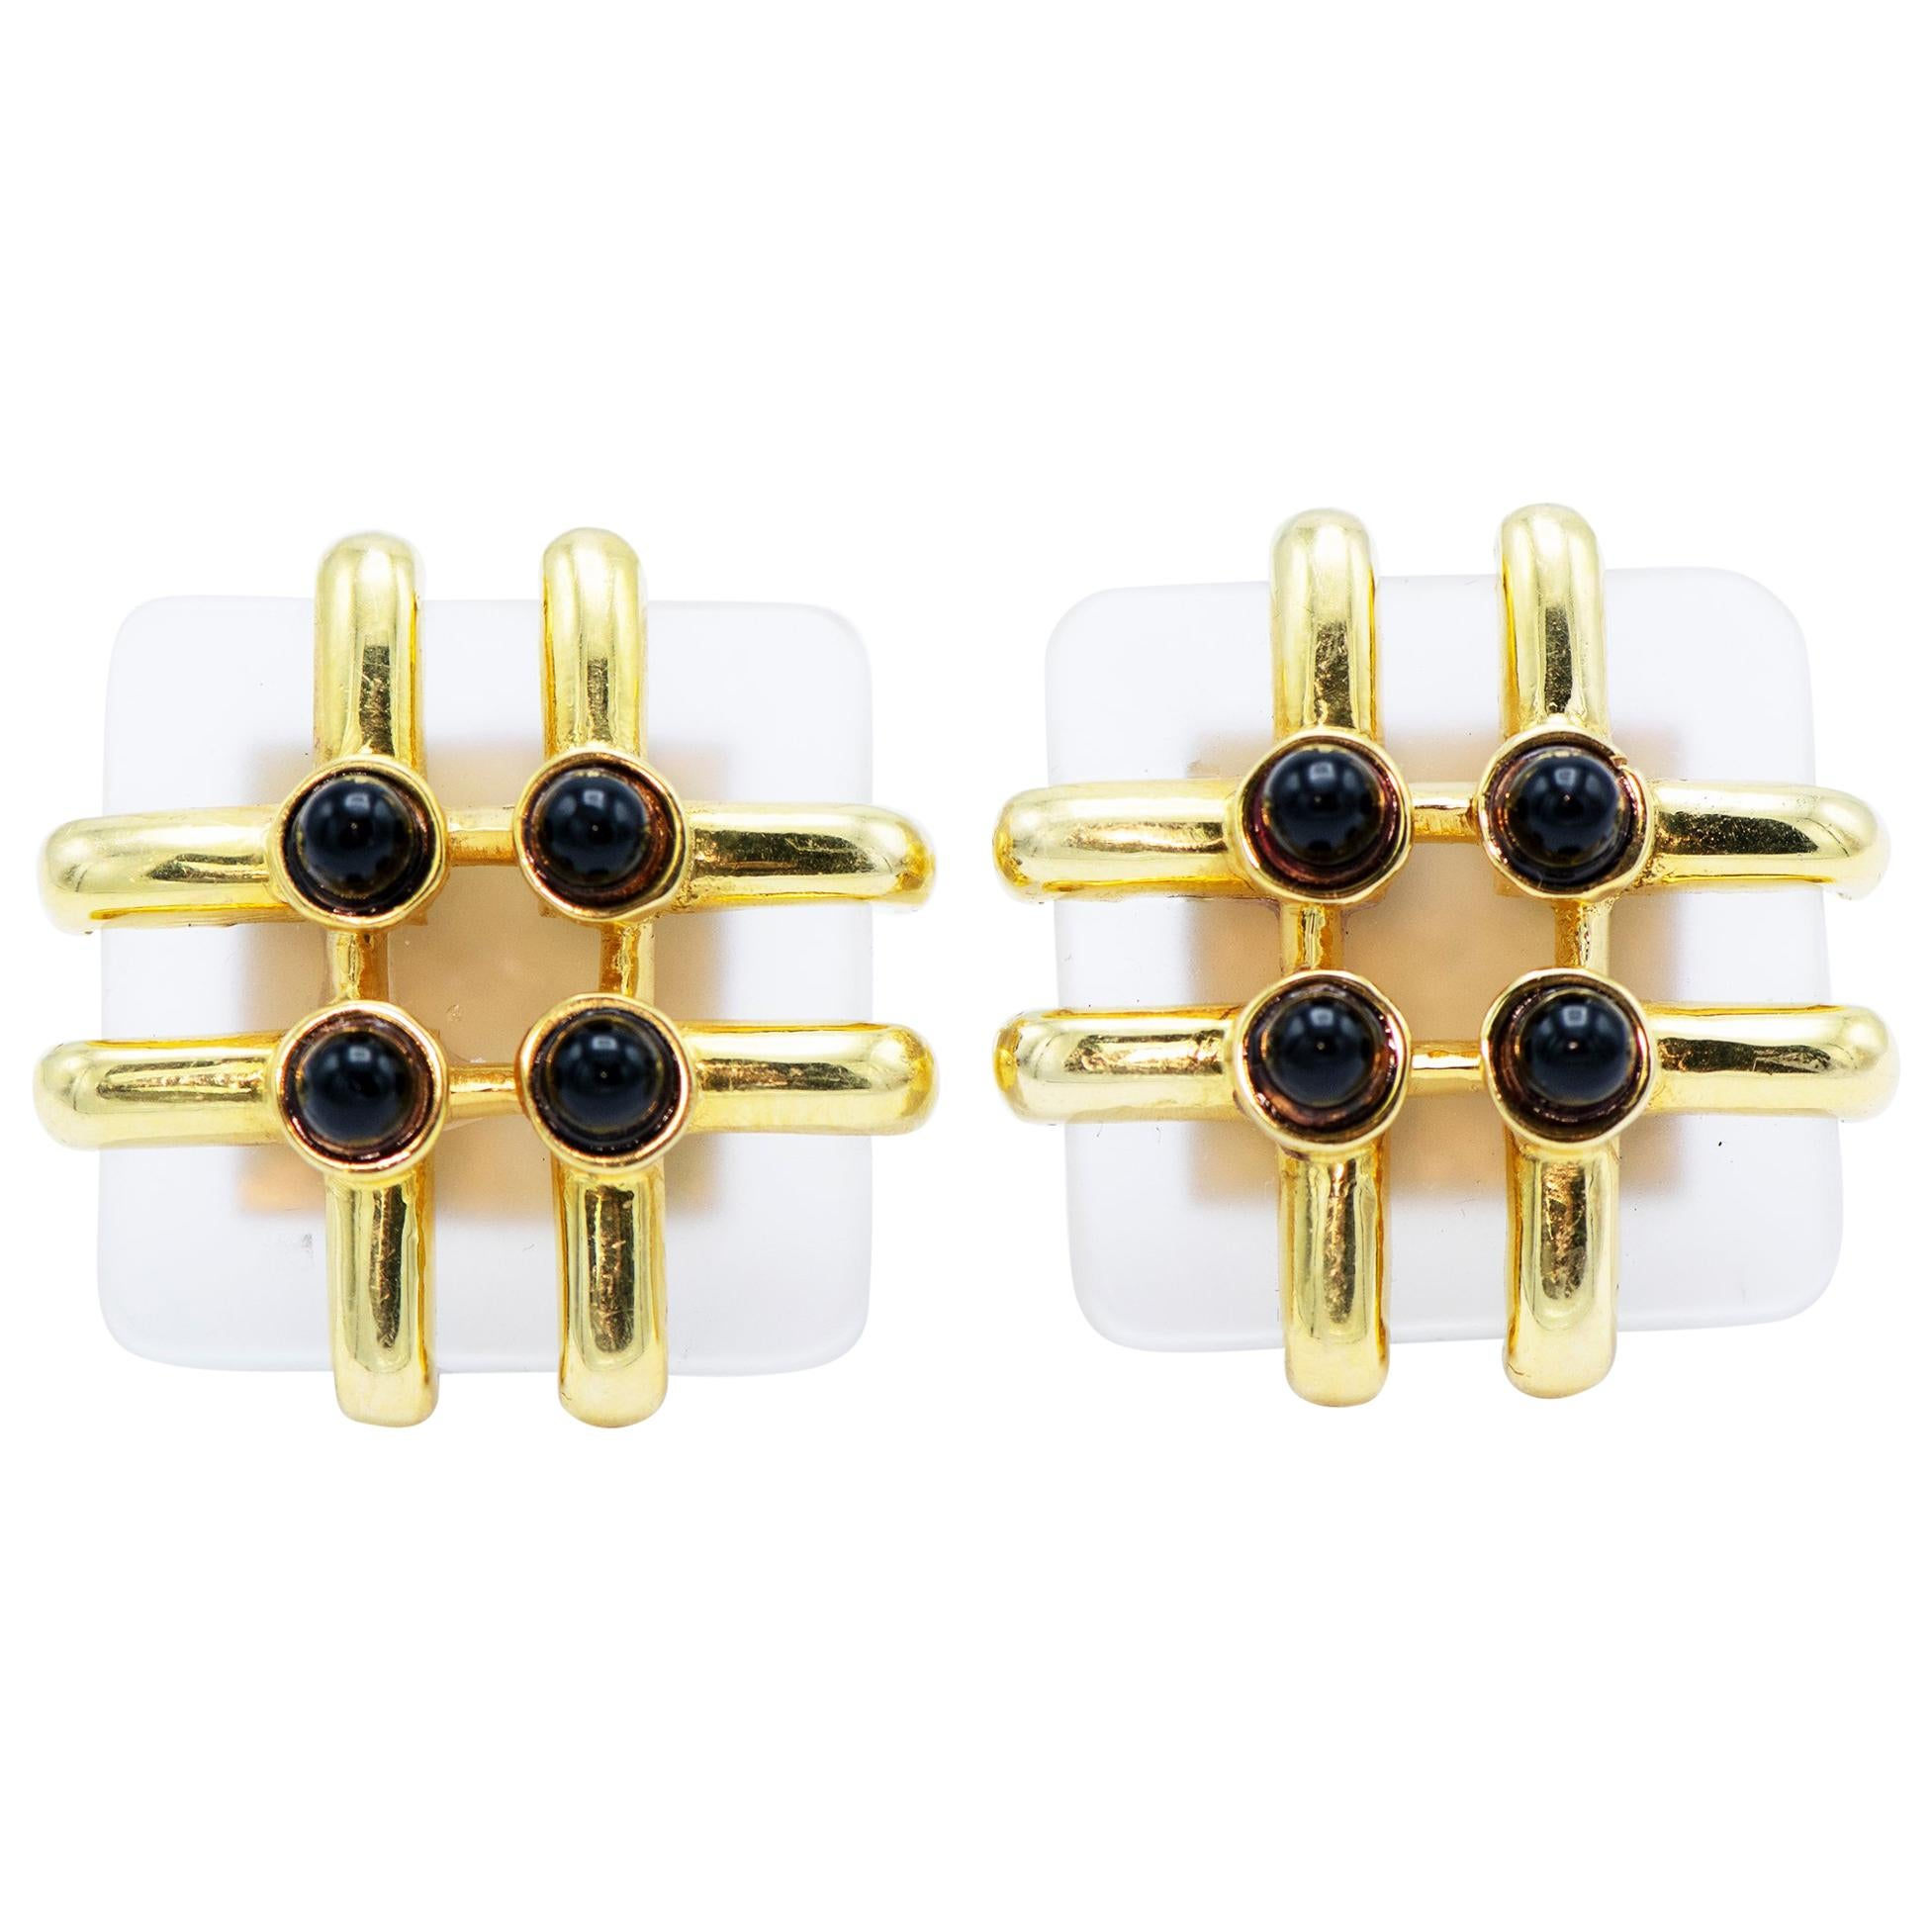 Cartier, A. Cipullo 18 Karat Yellow Gold Rock Crystal and Onyx